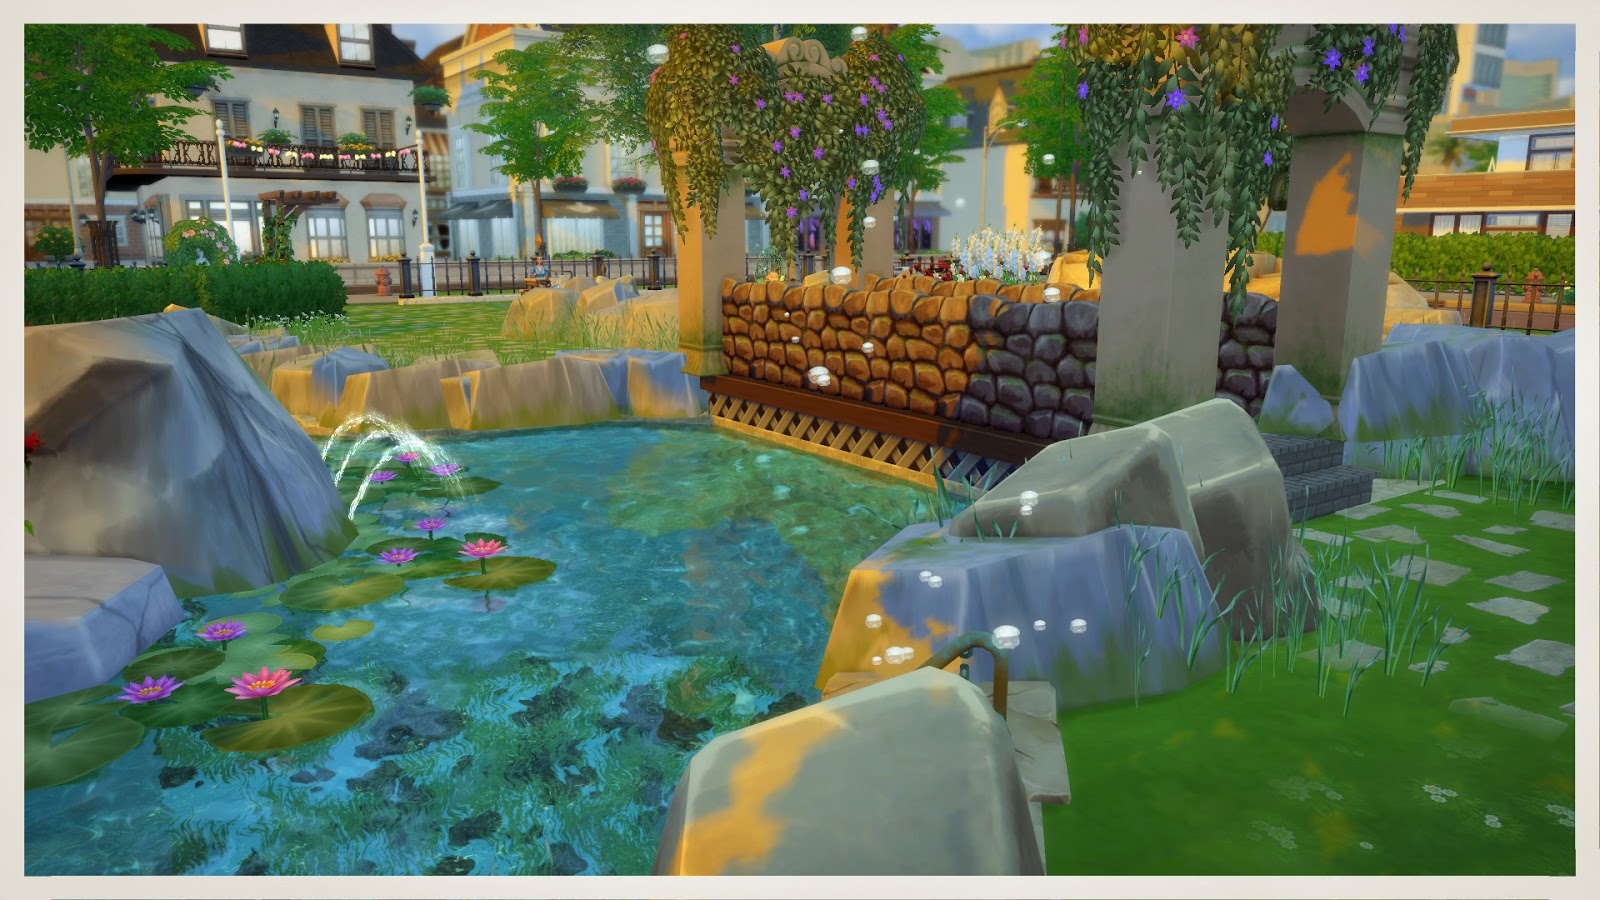 Sims 4 garden center lot mods for download dinha for Indoor gardening sims 4